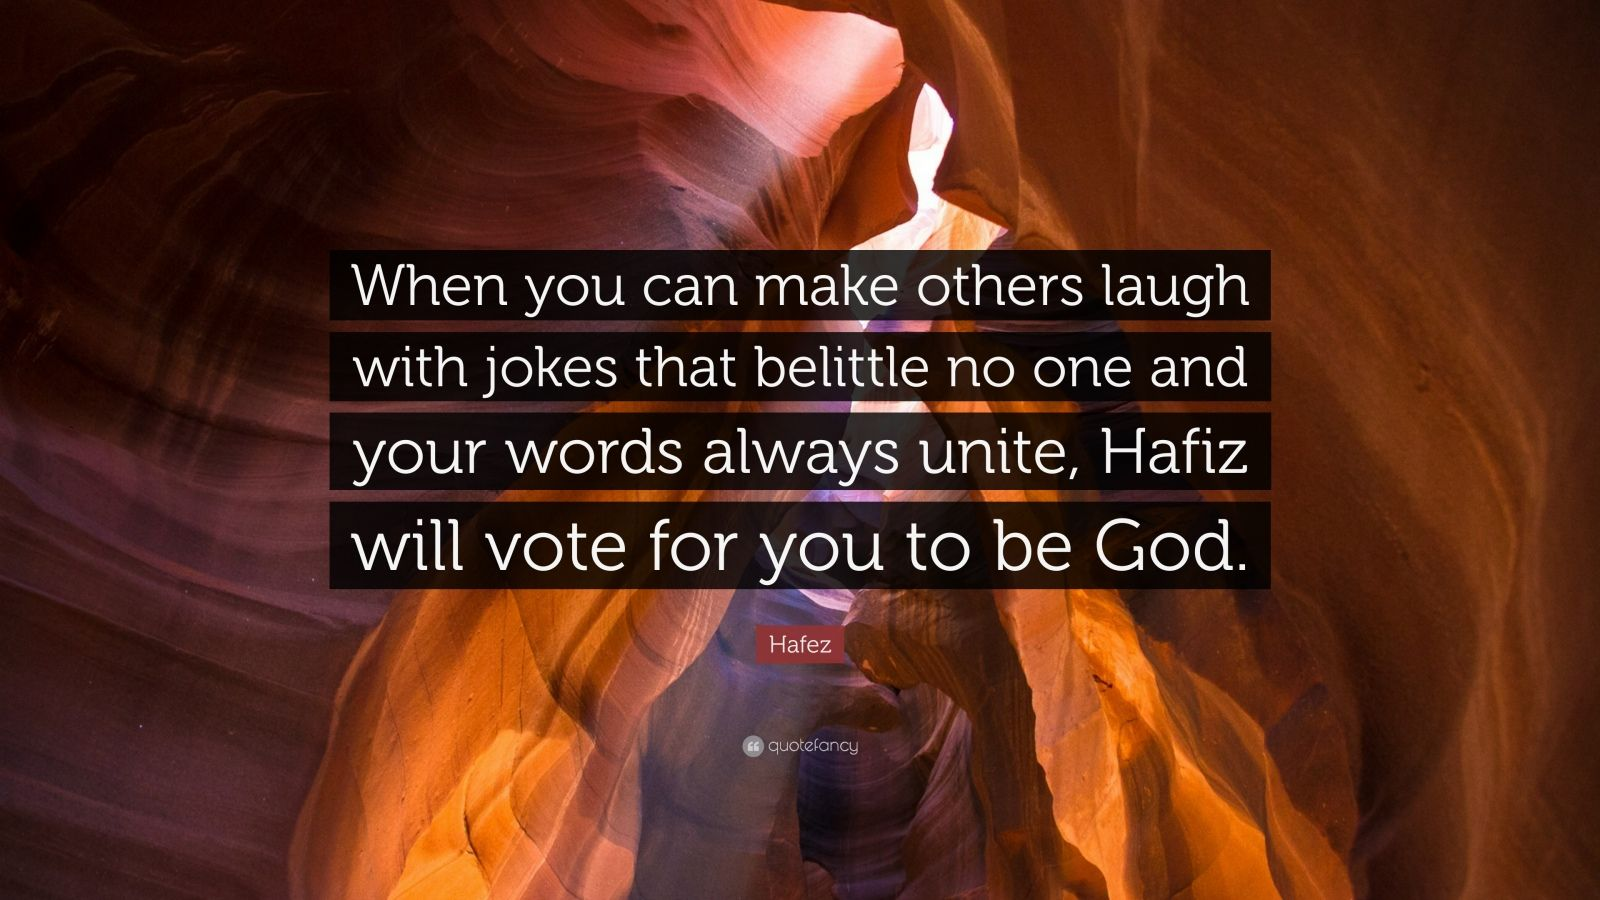 """Hafez Quote: """"When you can make others laugh with jokes that belittle no one and your words always unite, Hafiz will vote for you to be God."""""""